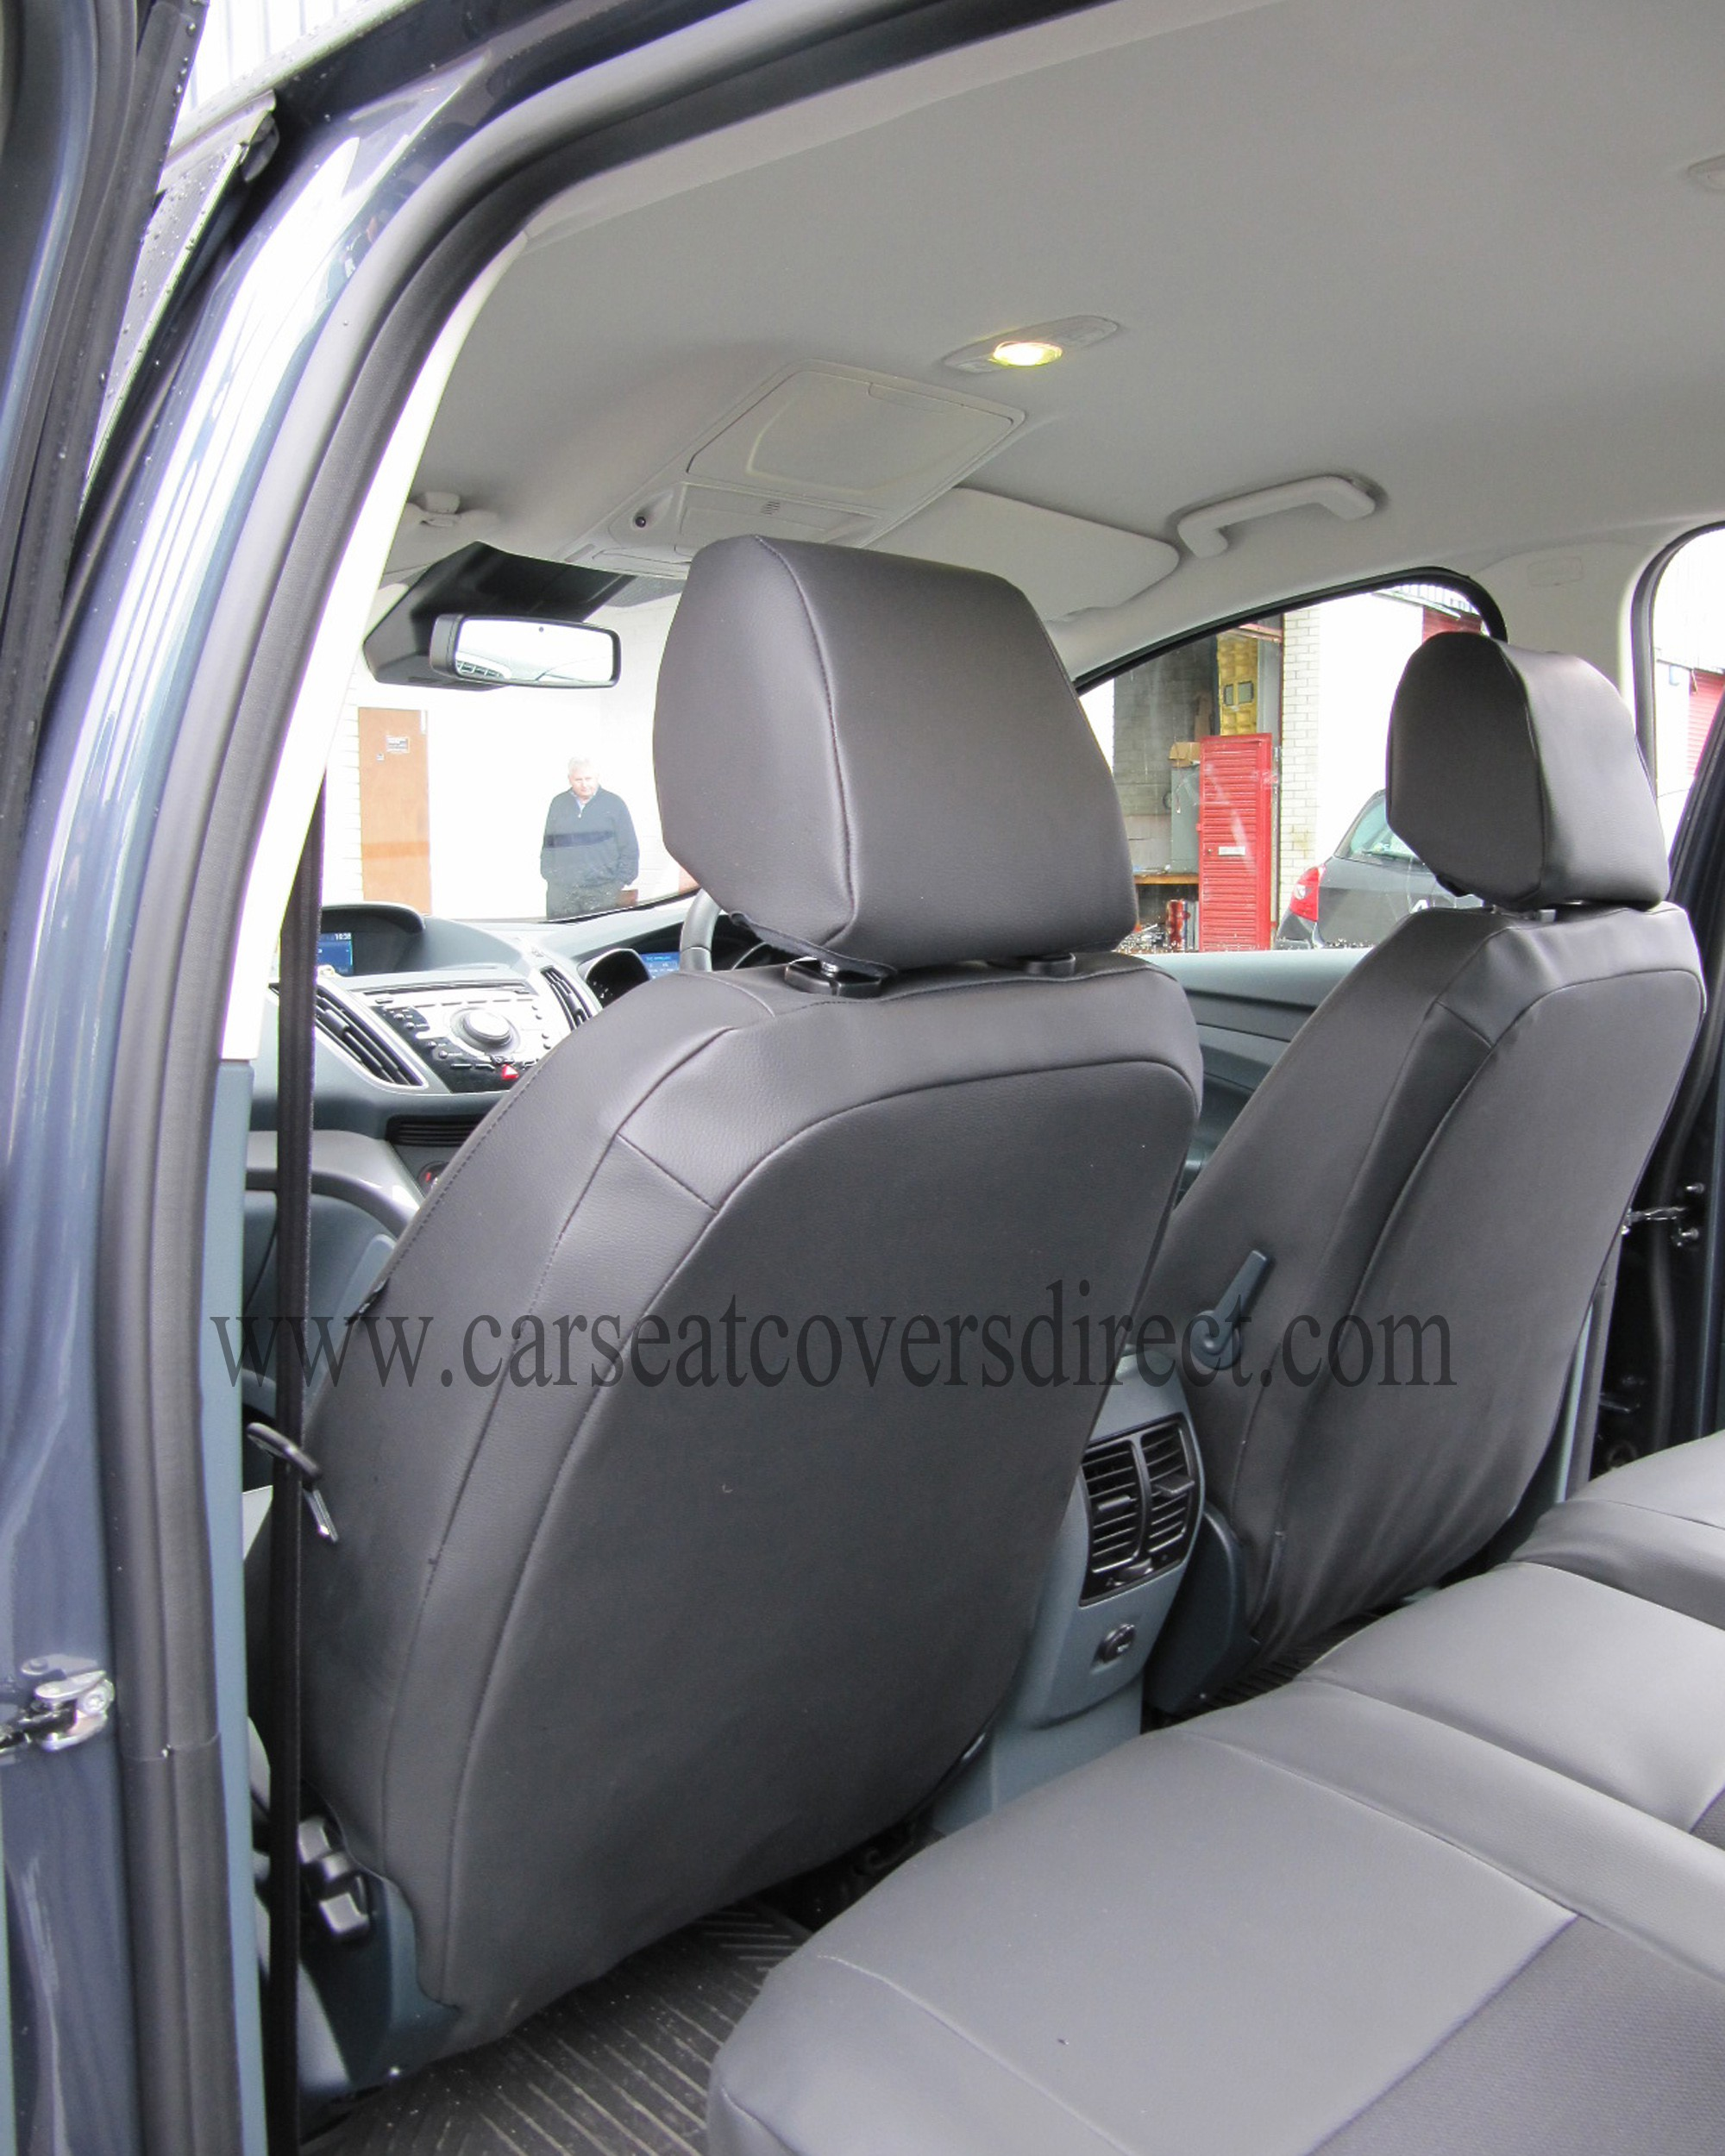 FORD C MAX Car Seat Covers Car Seat Covers Direct